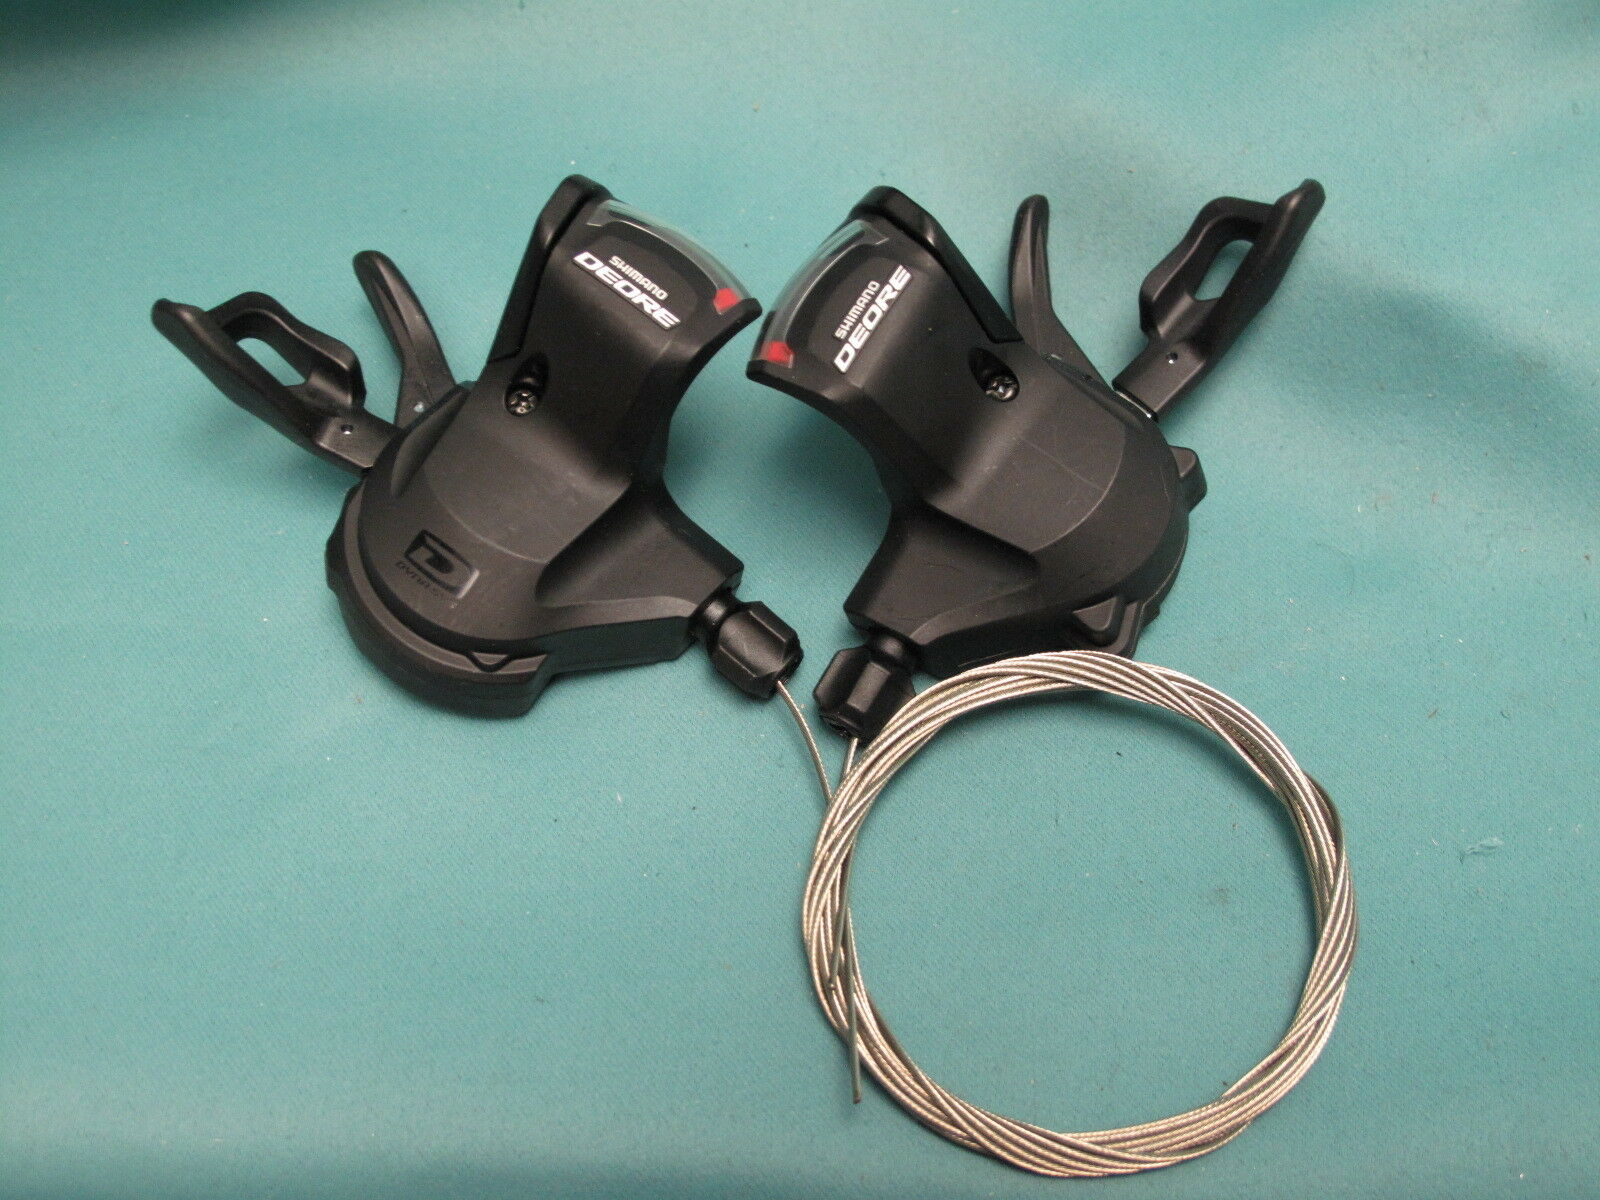 Shimano Deore SL-M610 2 3 x 10 Speed Shifters Set with Cables New